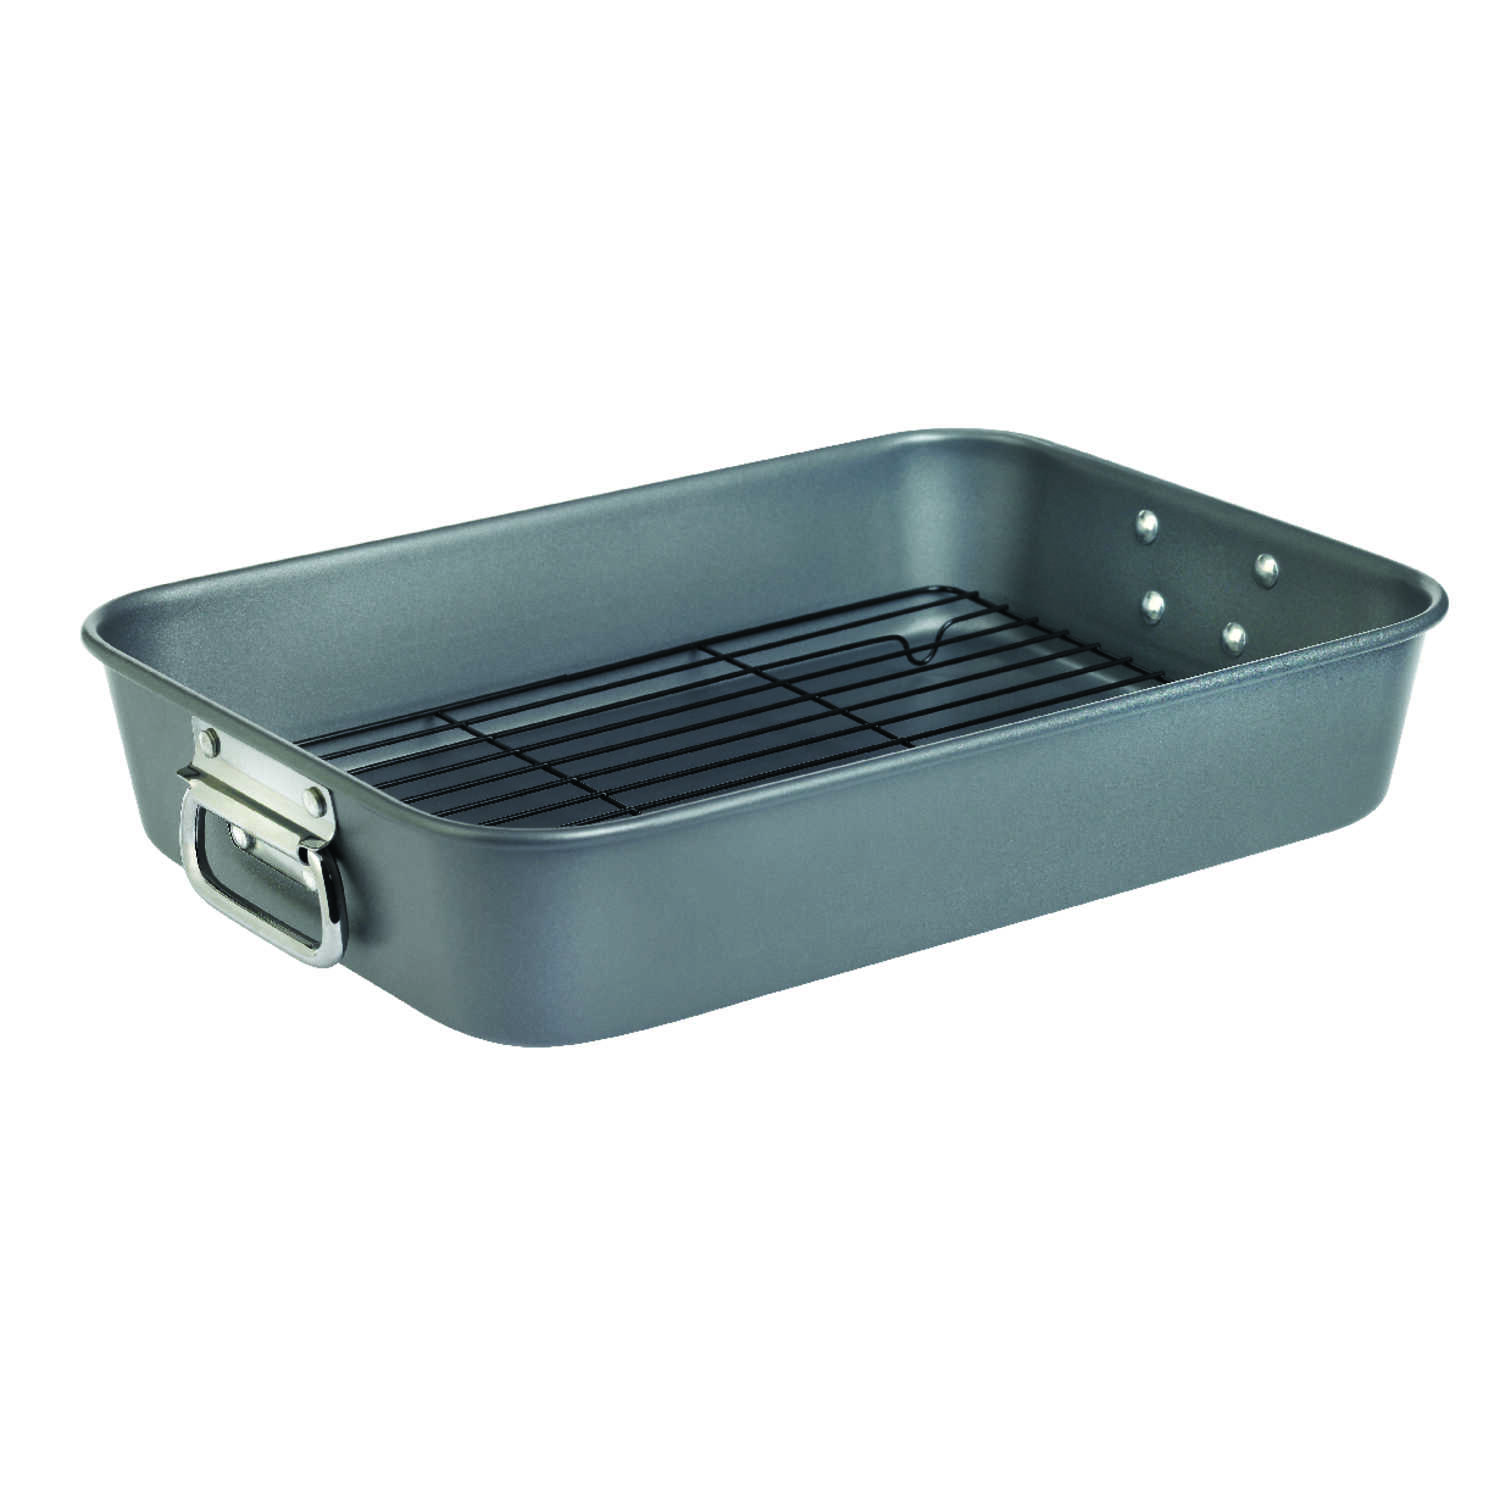 Wearever  Commercial  Aluminum  Roaster with Rack  2.9  Gray